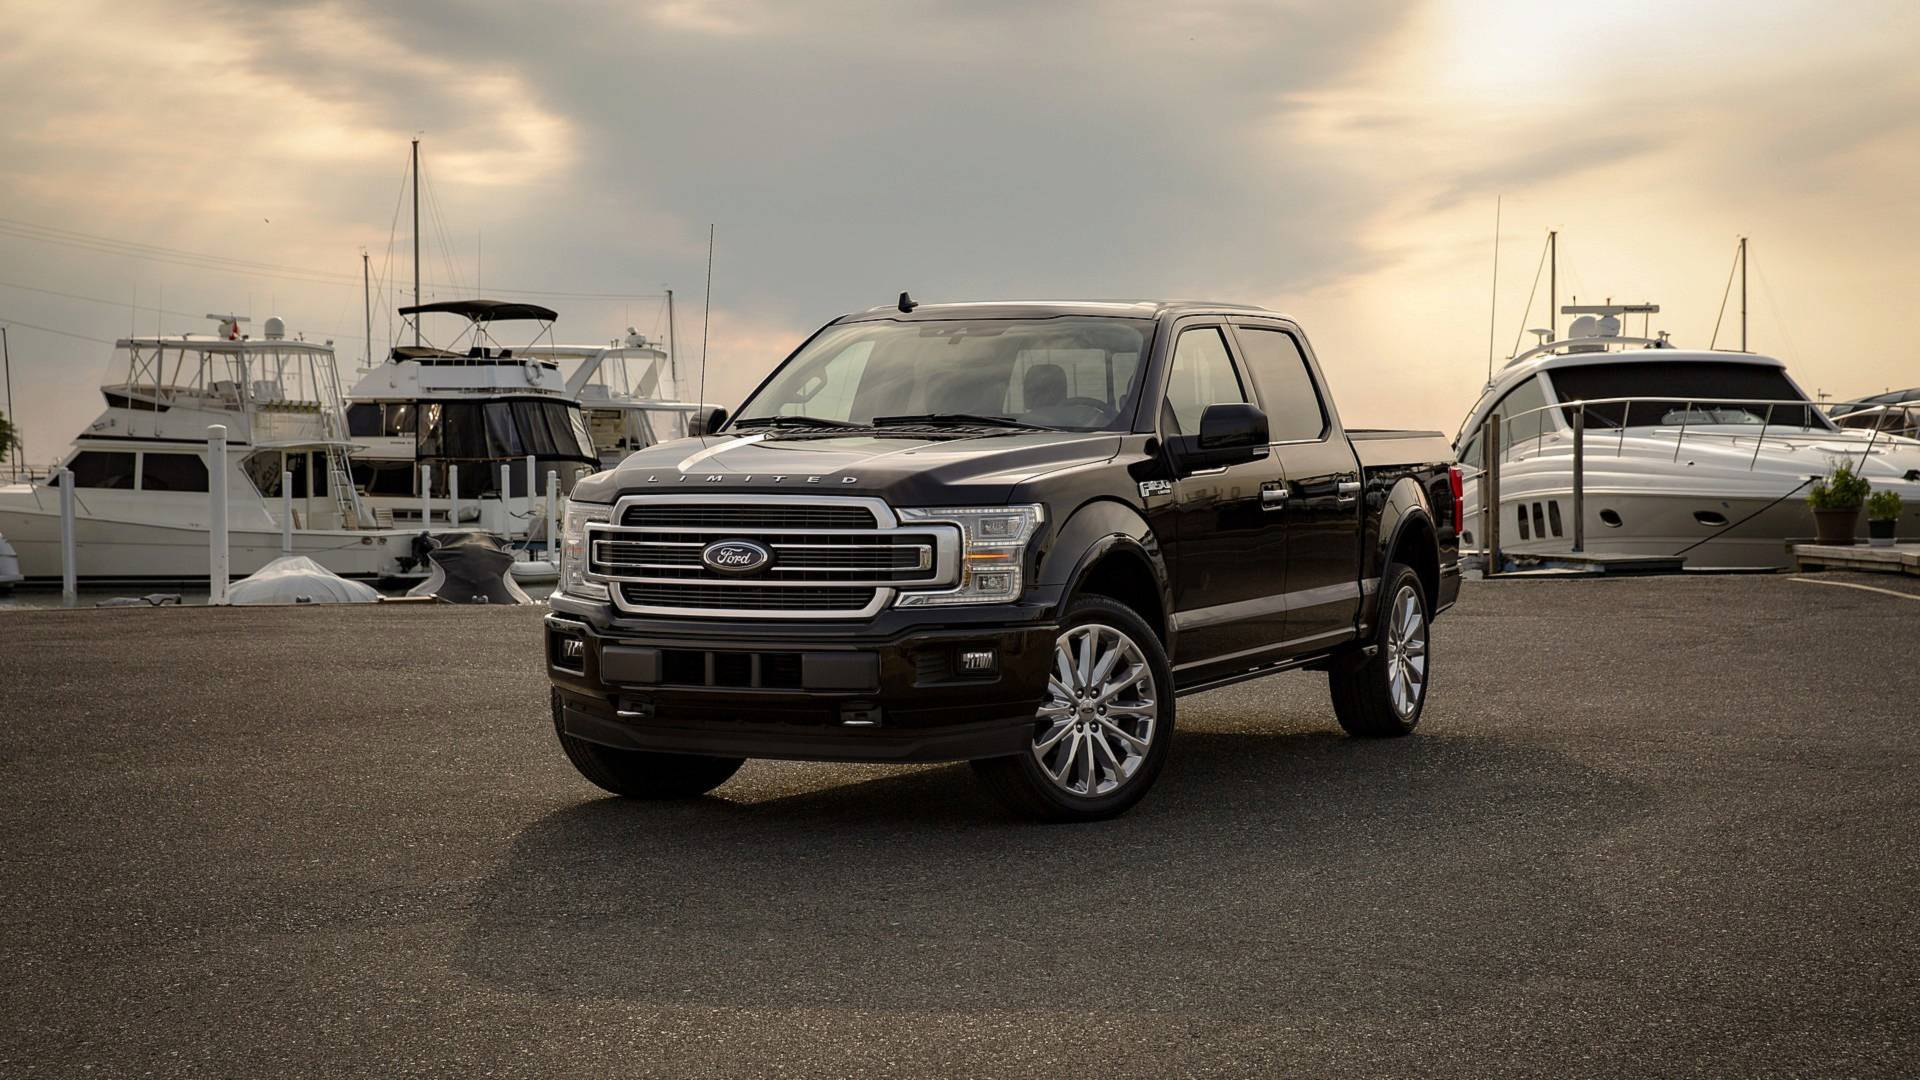 2019 ford f 150 limited gains 450 hp ecoboost v6 engine. Black Bedroom Furniture Sets. Home Design Ideas